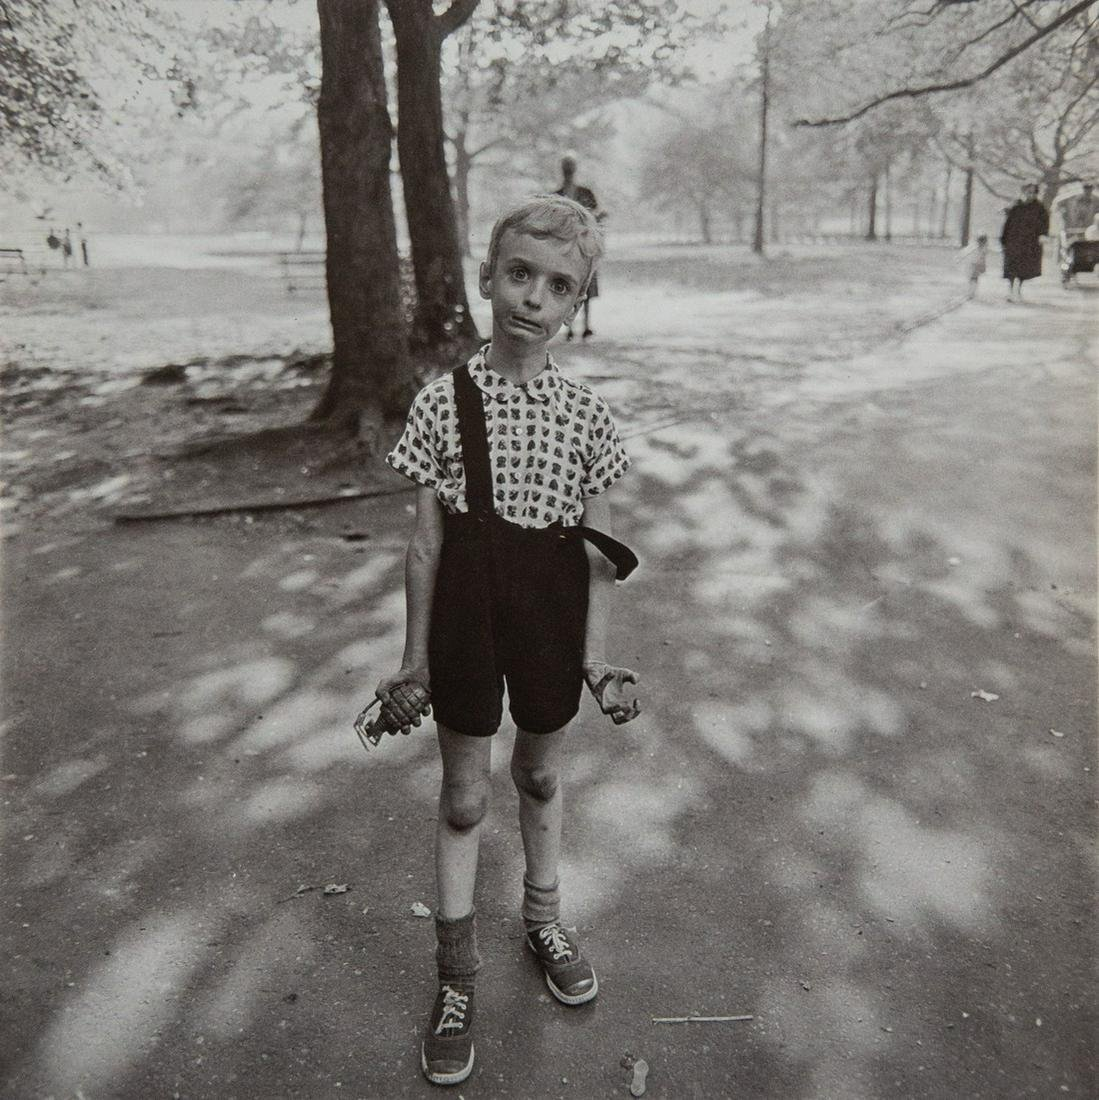 DIANE ARBUS - Child With Toy Hand Grenade